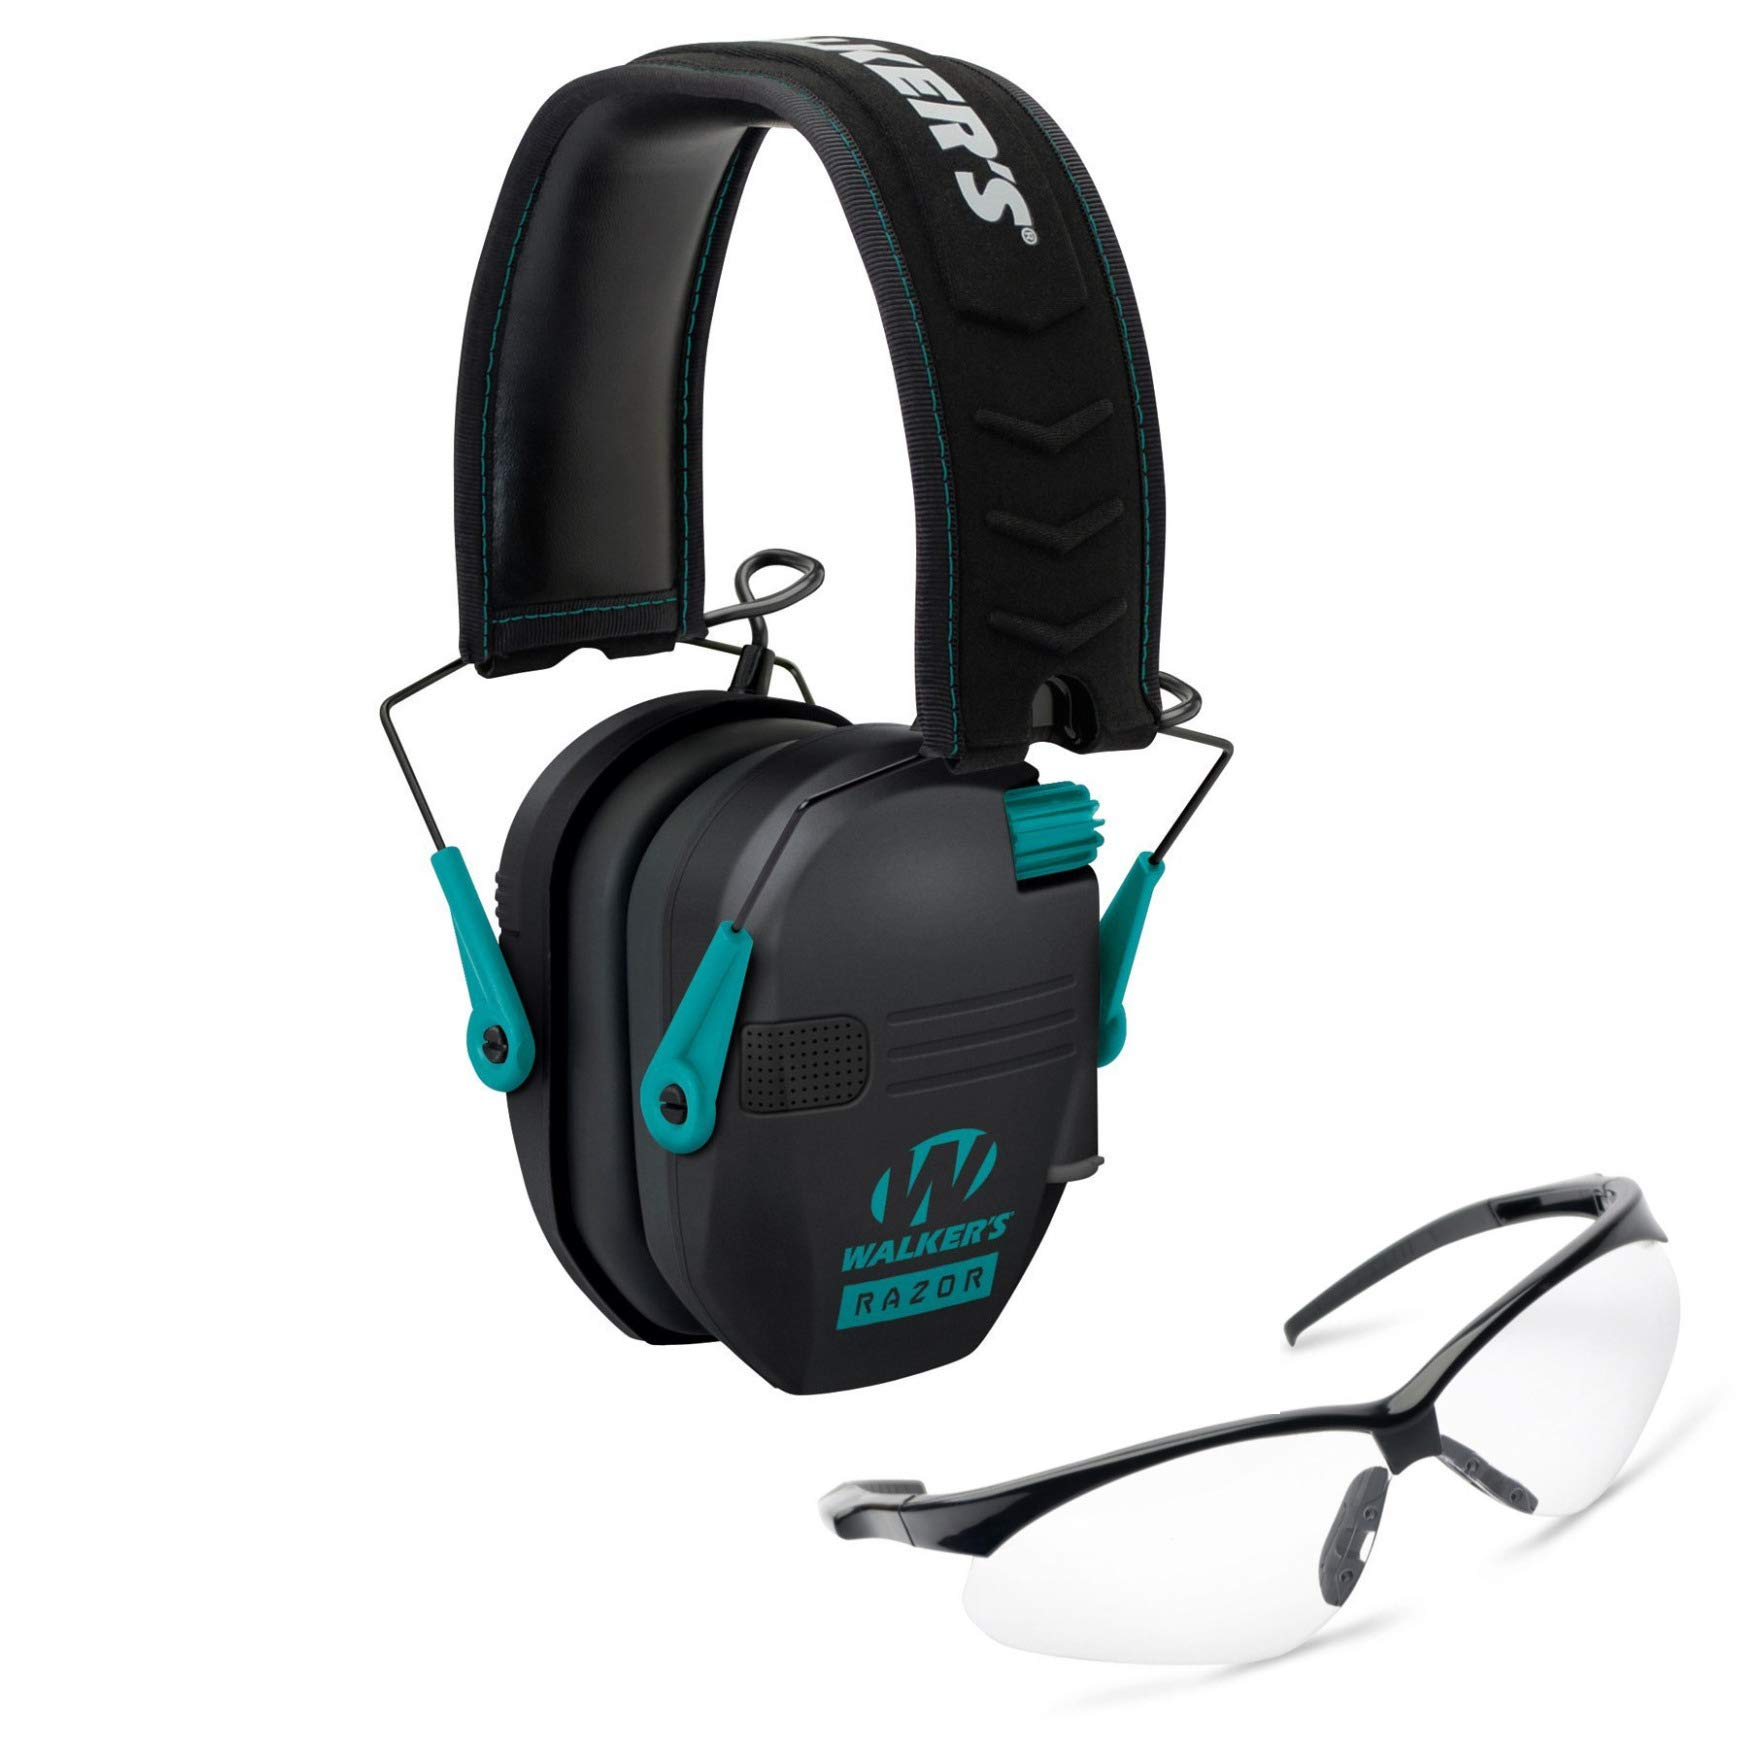 Walkers Razor Slim Electronic Shooting Hearing Protection Muff, Teal/Black (Sound Amplification and Suppression) with Shooting Glasses Kit by Walkers (Image #1)